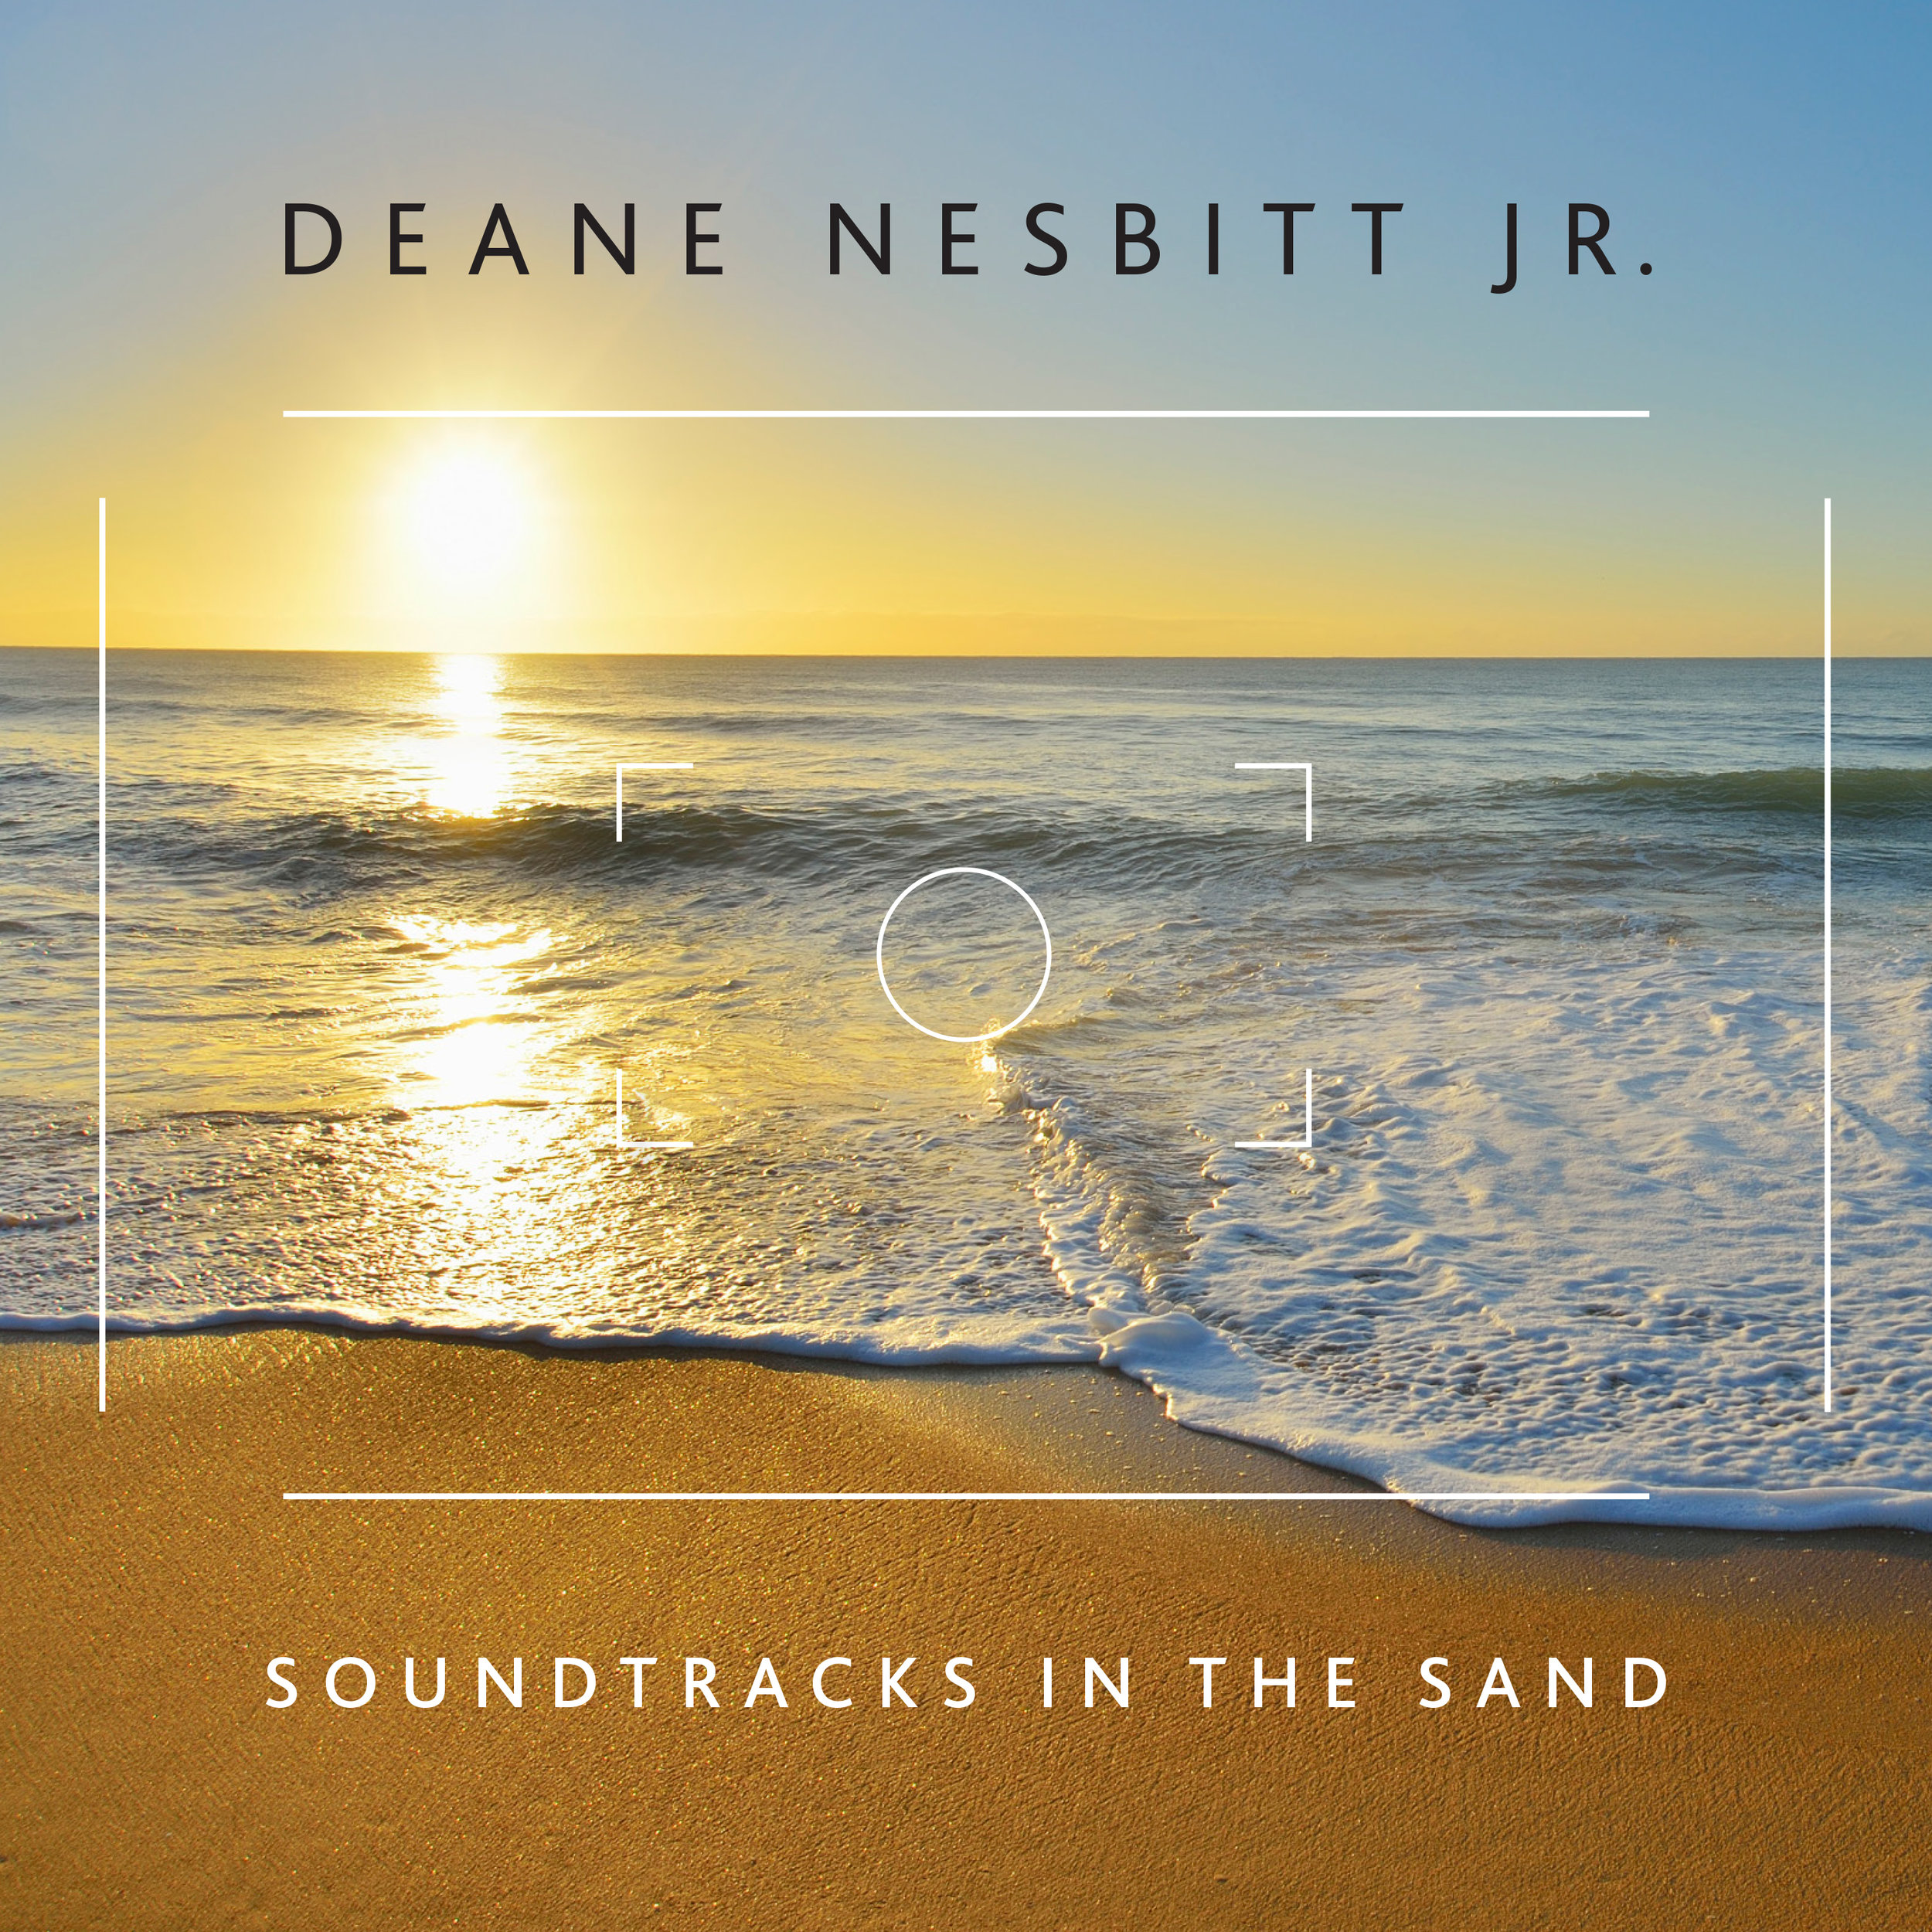 Soundtracks in the Sand - Coming January 2019